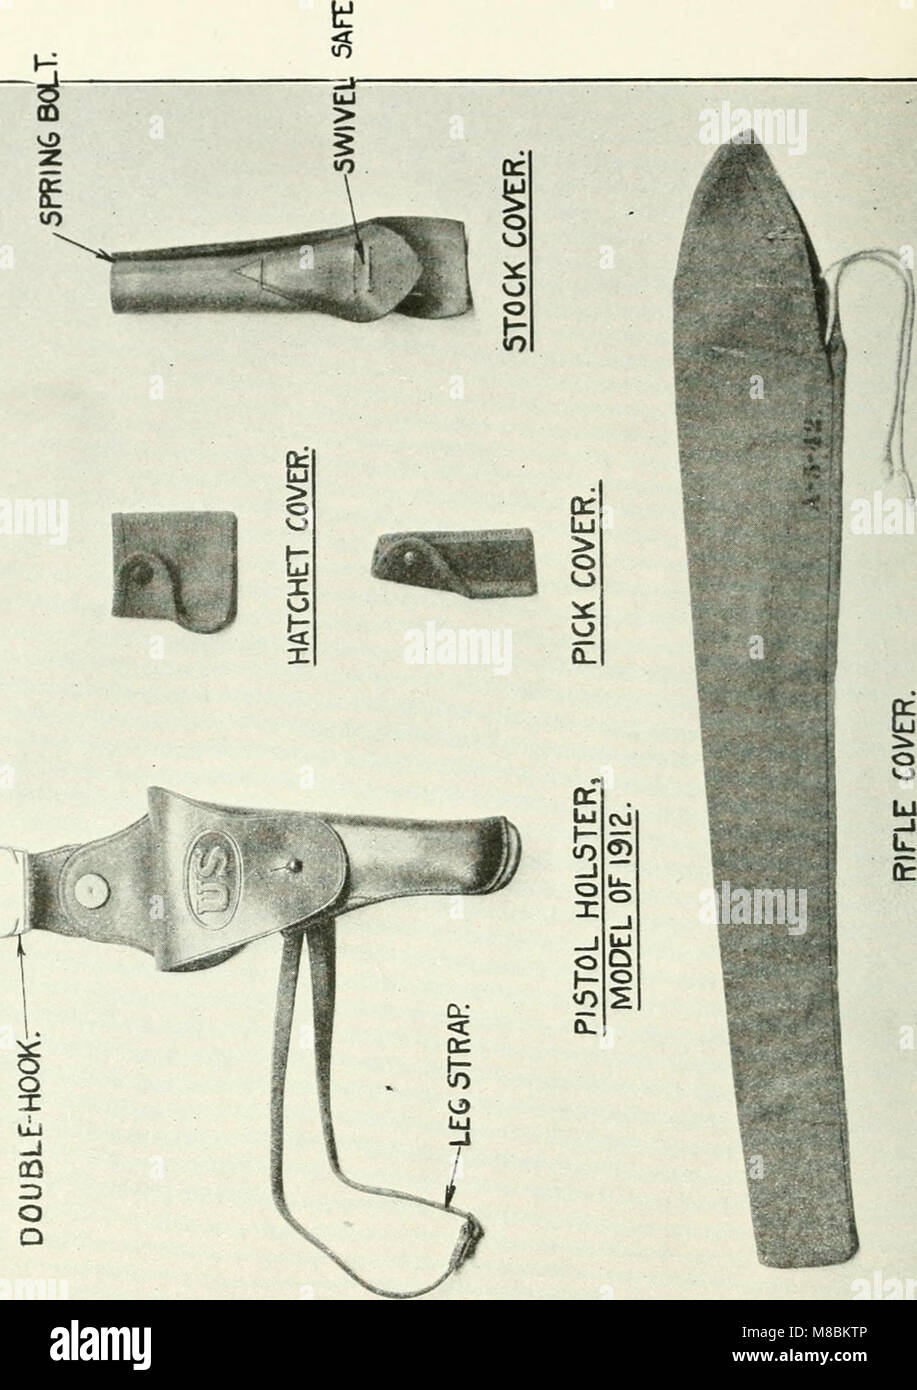 Description and directions for the use and care of cavalry equipment, model of 1912 Oct. 5, 1914 (1918) (14769692692) - Stock Image